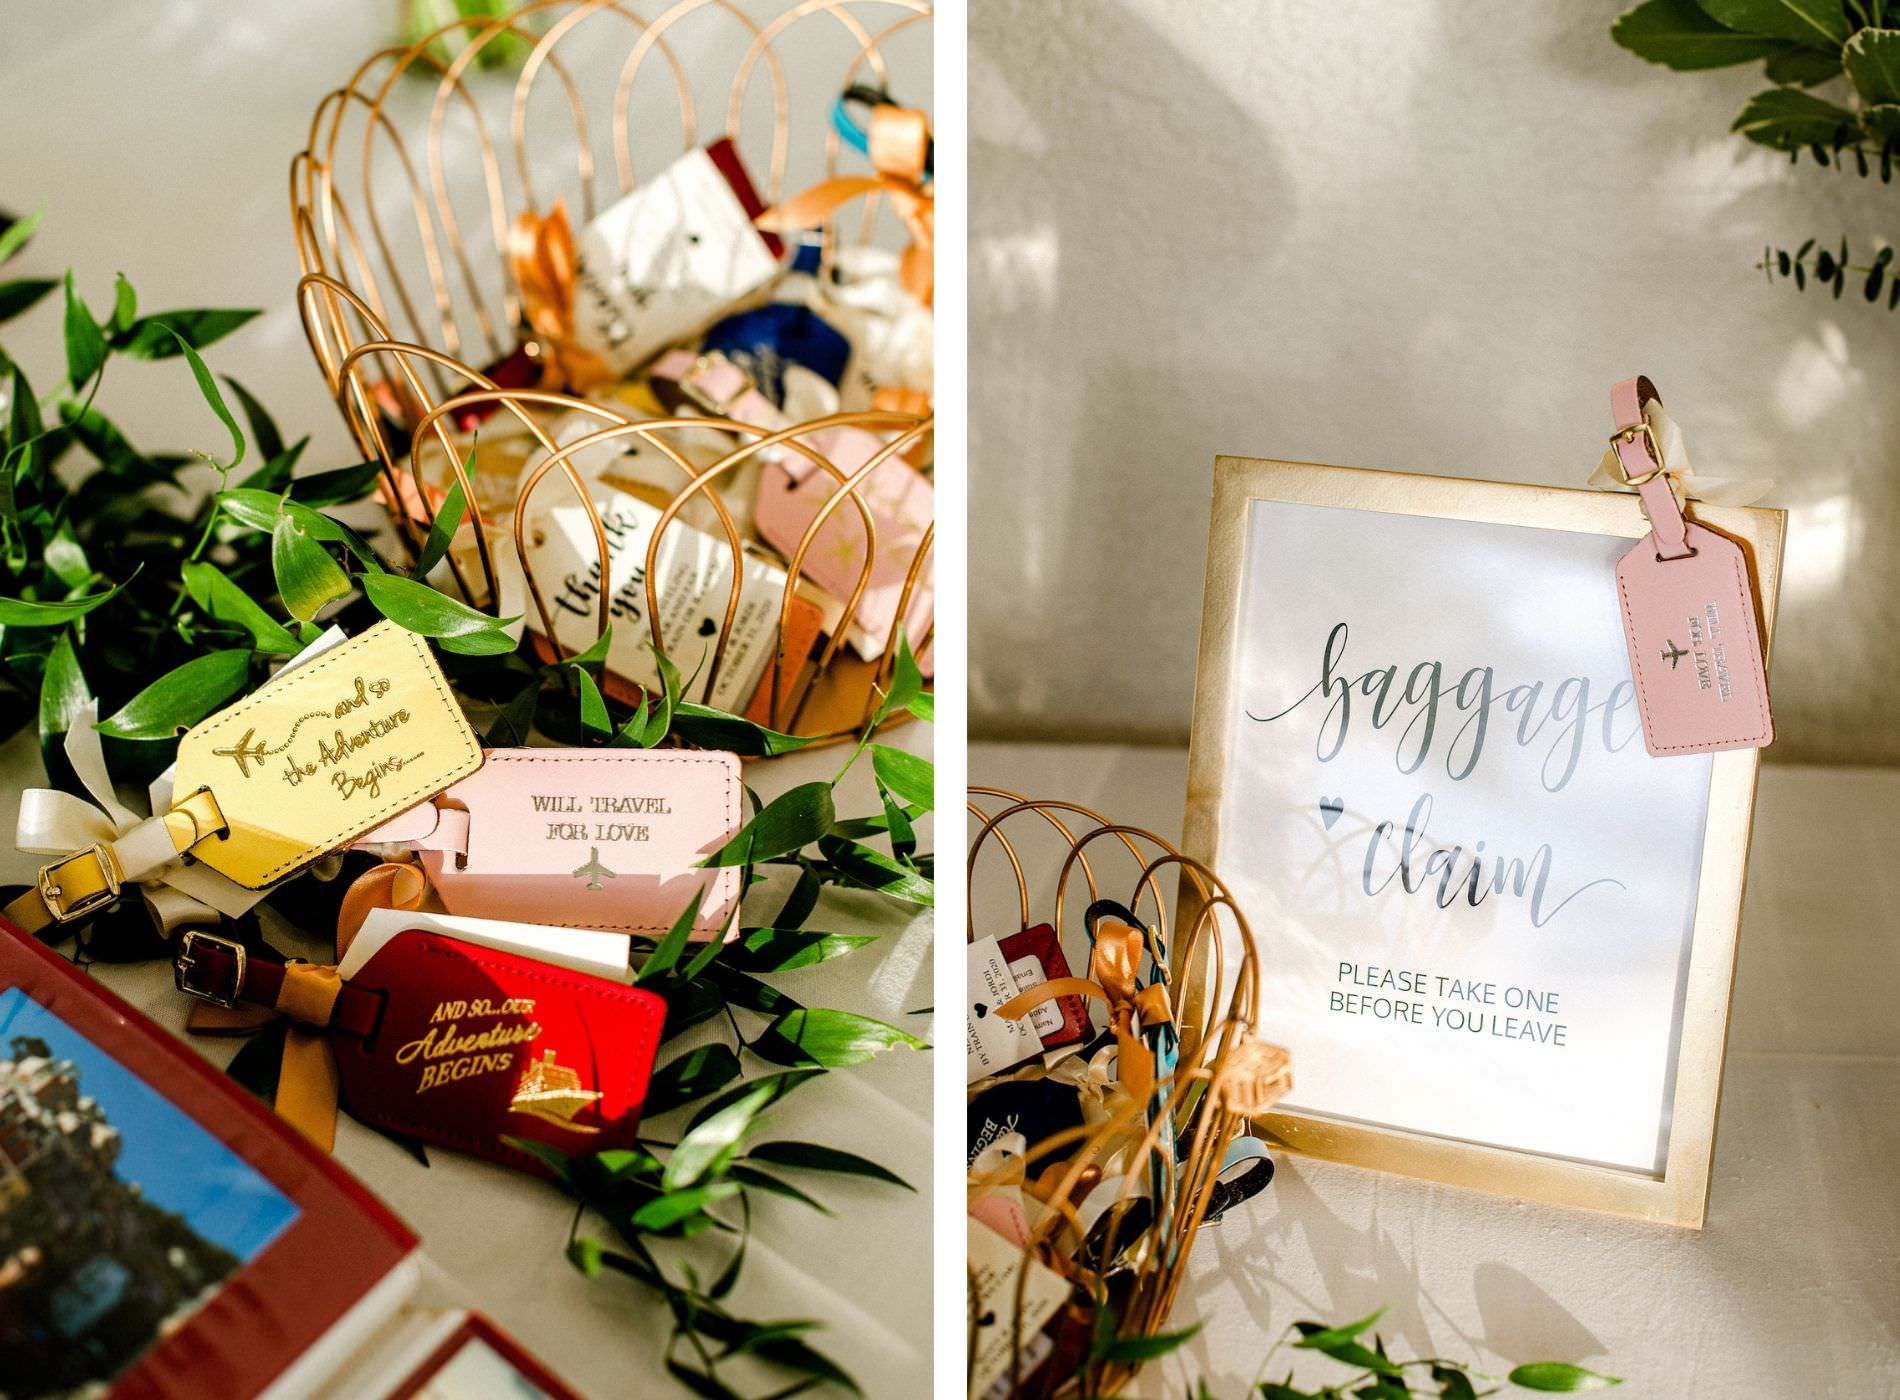 Tampa Wedding Favors Travel Theme Luggage Tags | And So The Adventure Begins | Baggage Claim wedding Favor Sign